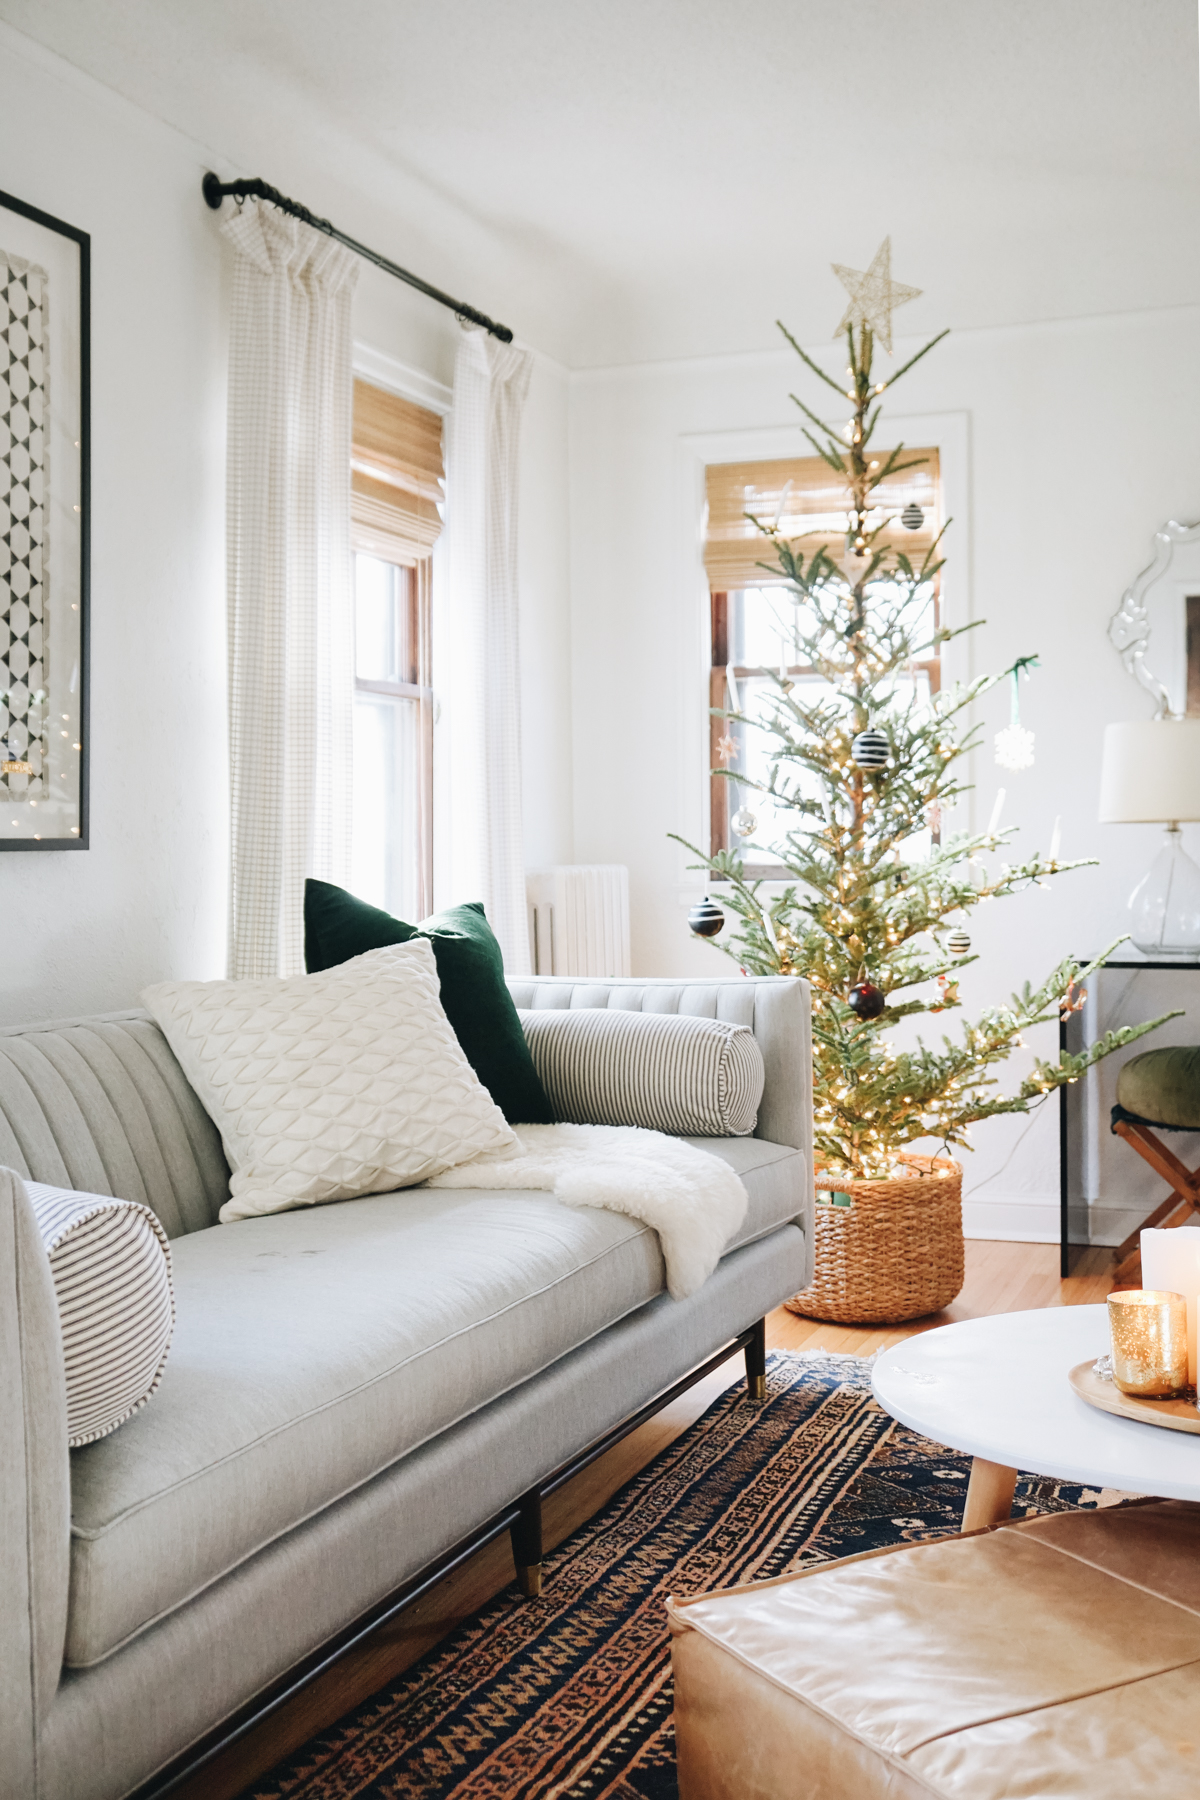 5 Ways to Infuse Holiday Spirit With Your Window Treatments